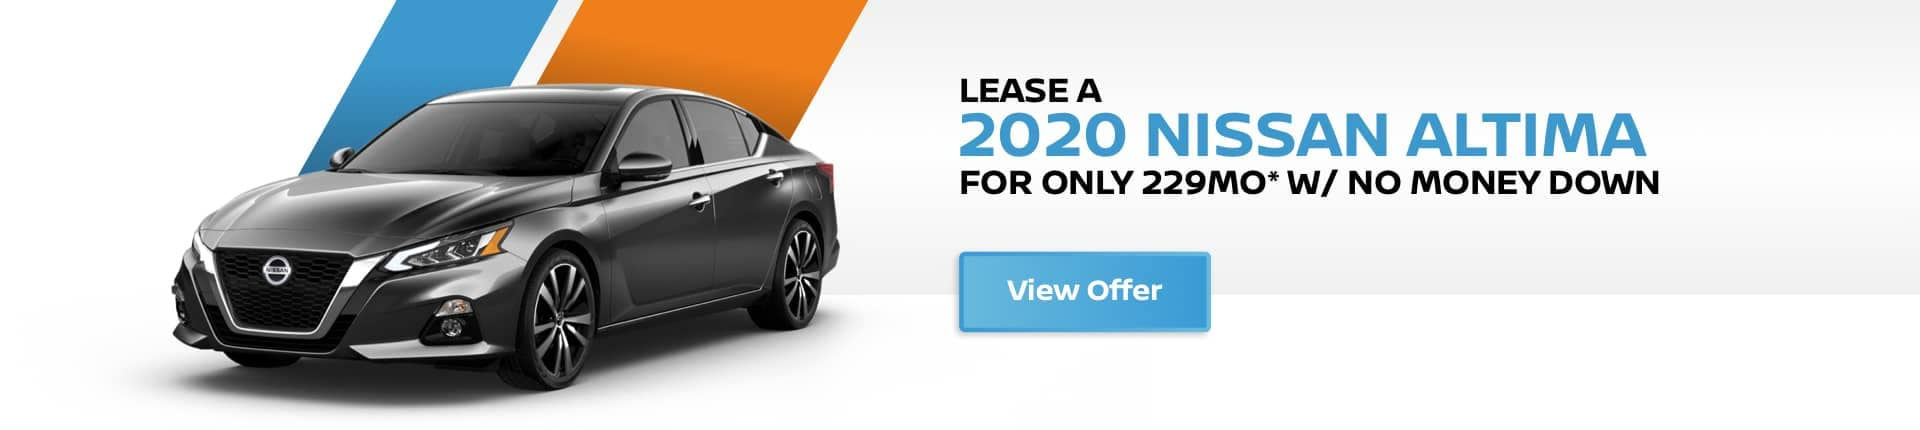 lease a 2020 nissan altima for $229 per month no money down